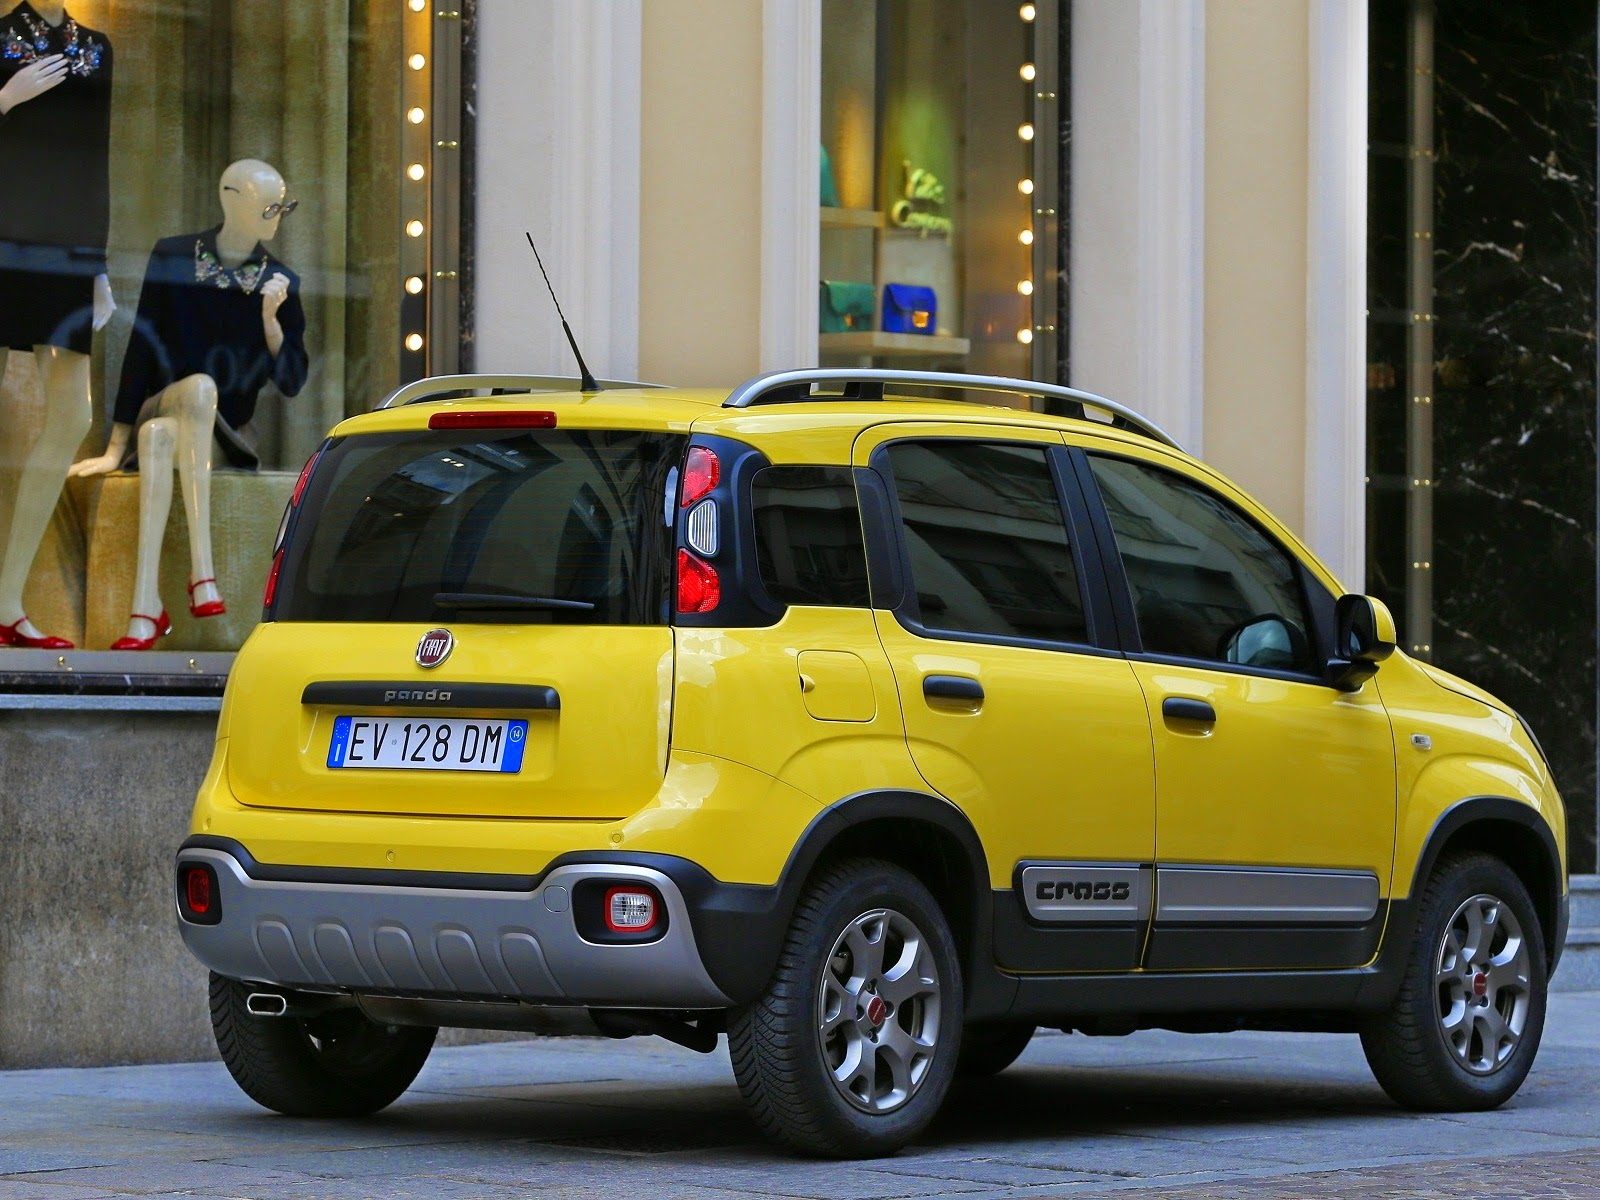 2015 fiat panda cross 0 9 litre twinair turbo 1 3 litre multijet ii turbo diesel car reviews. Black Bedroom Furniture Sets. Home Design Ideas